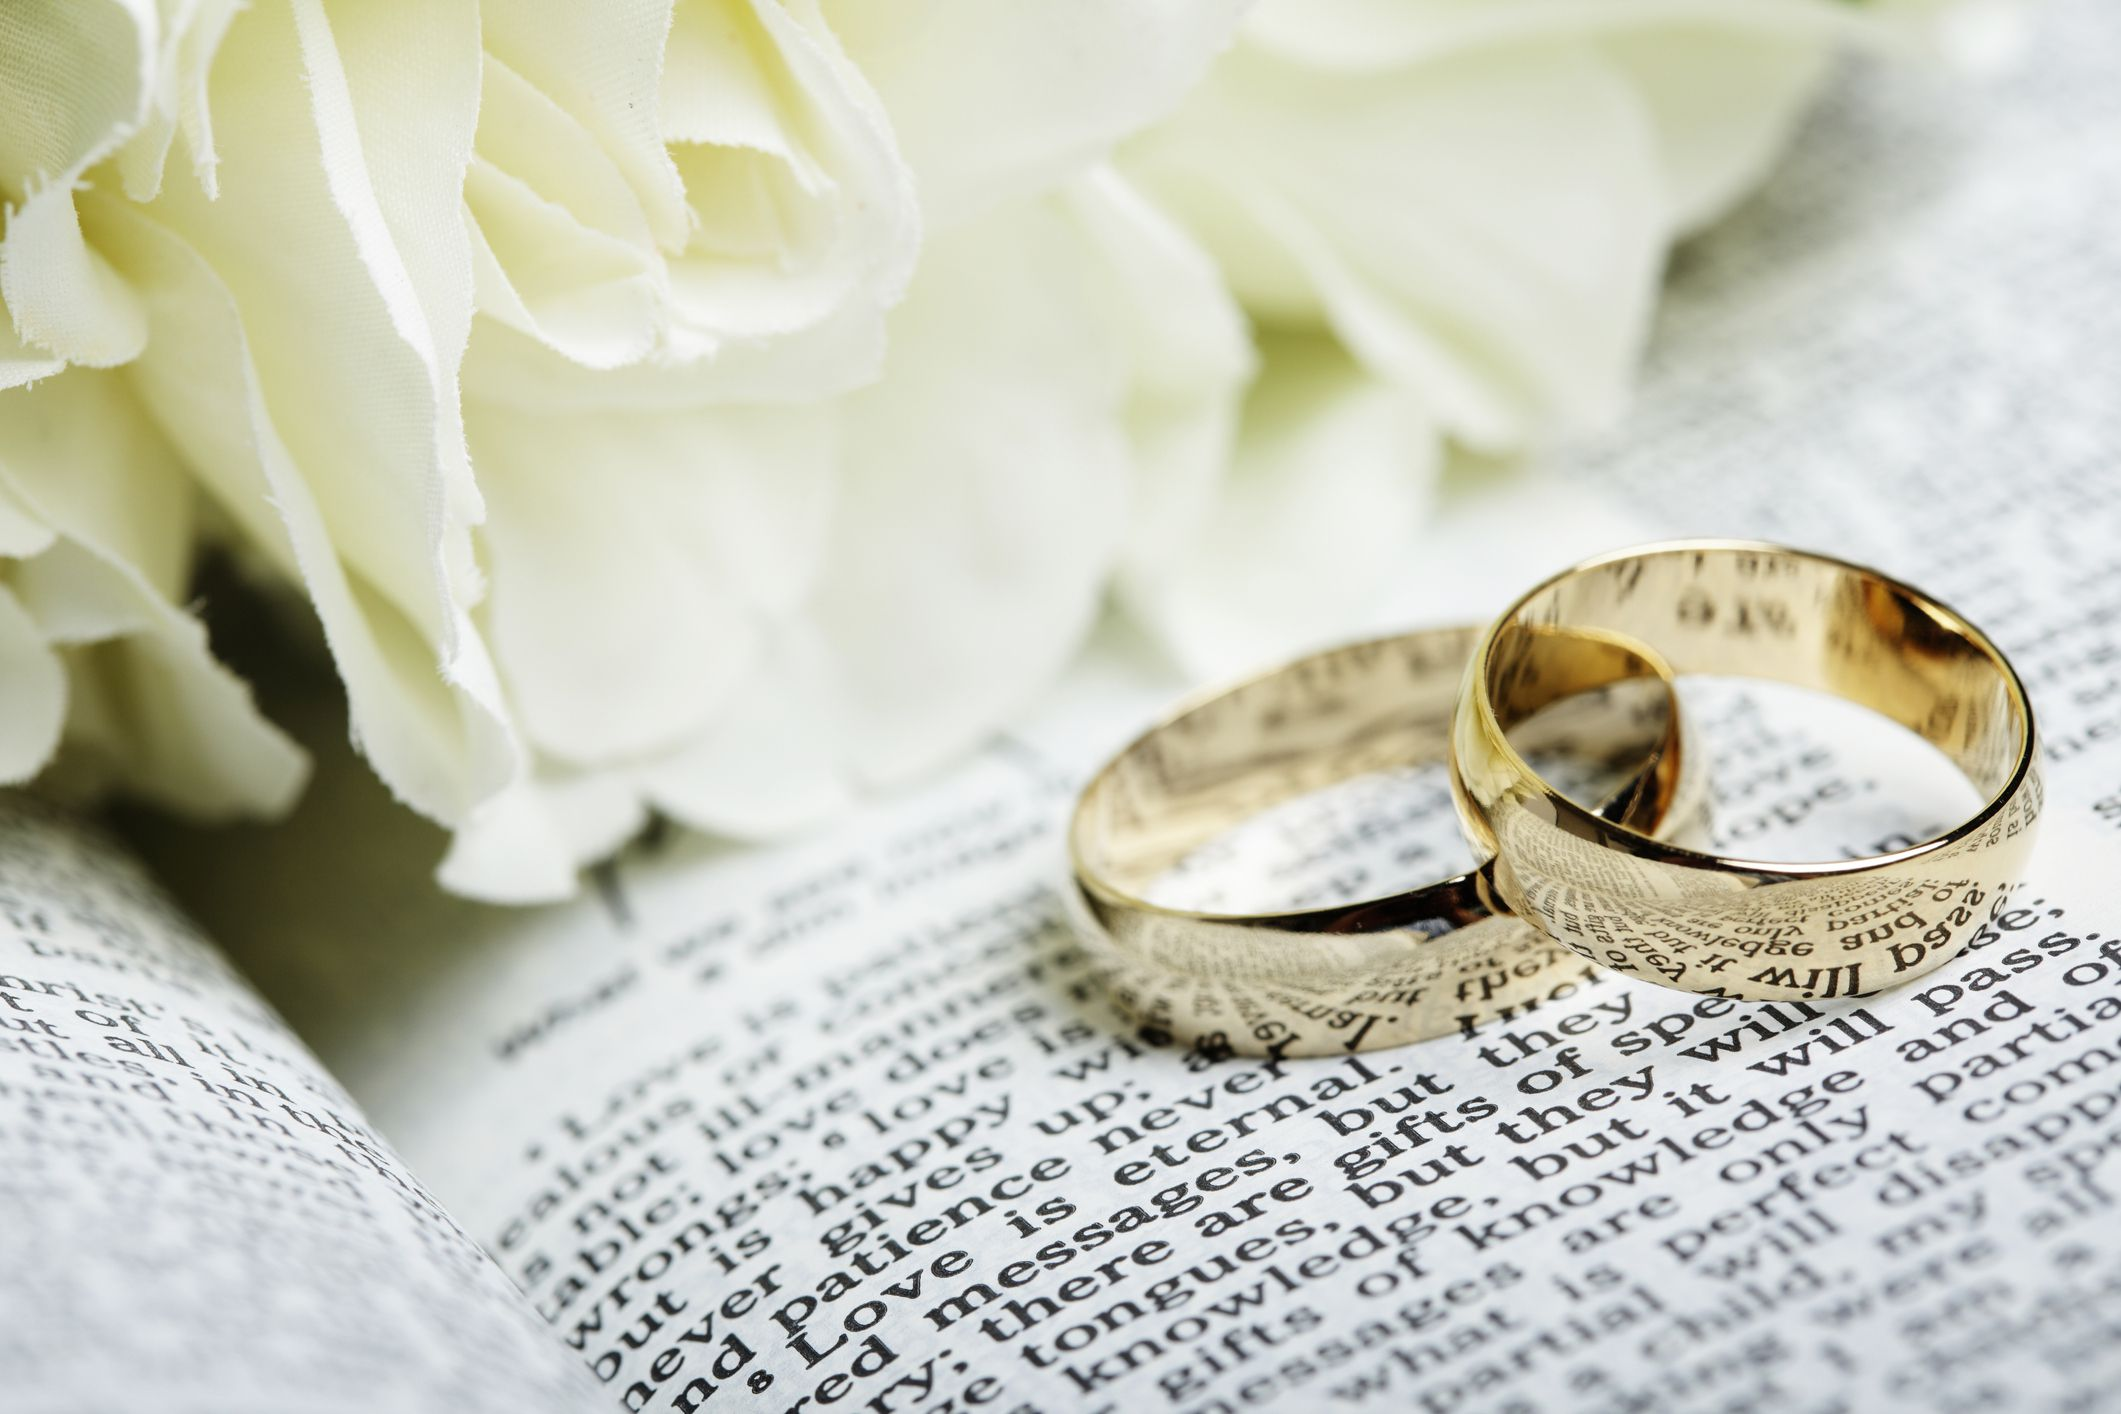 What Does God Say About Marriage In The Bible